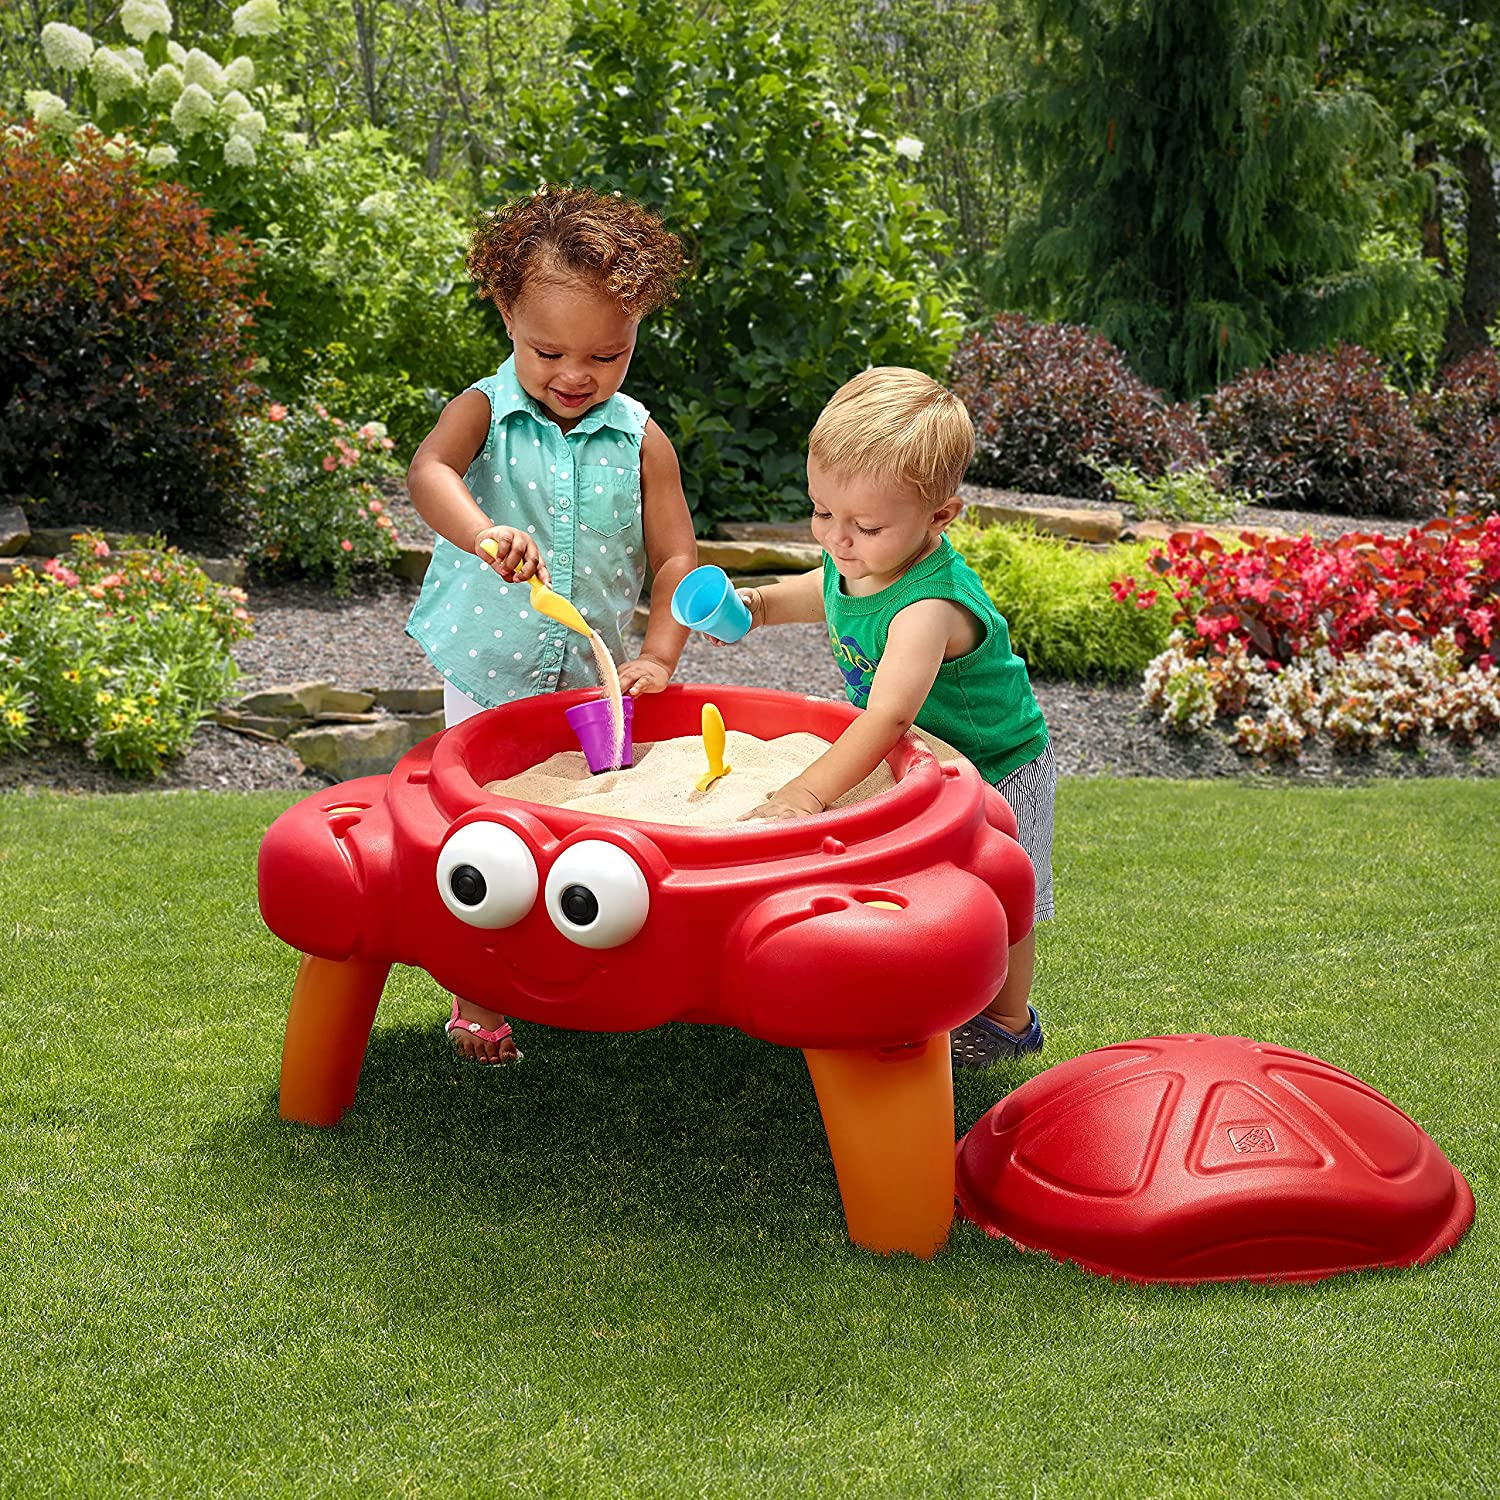 Best Outdoor Toys for Toddlers 15 Options